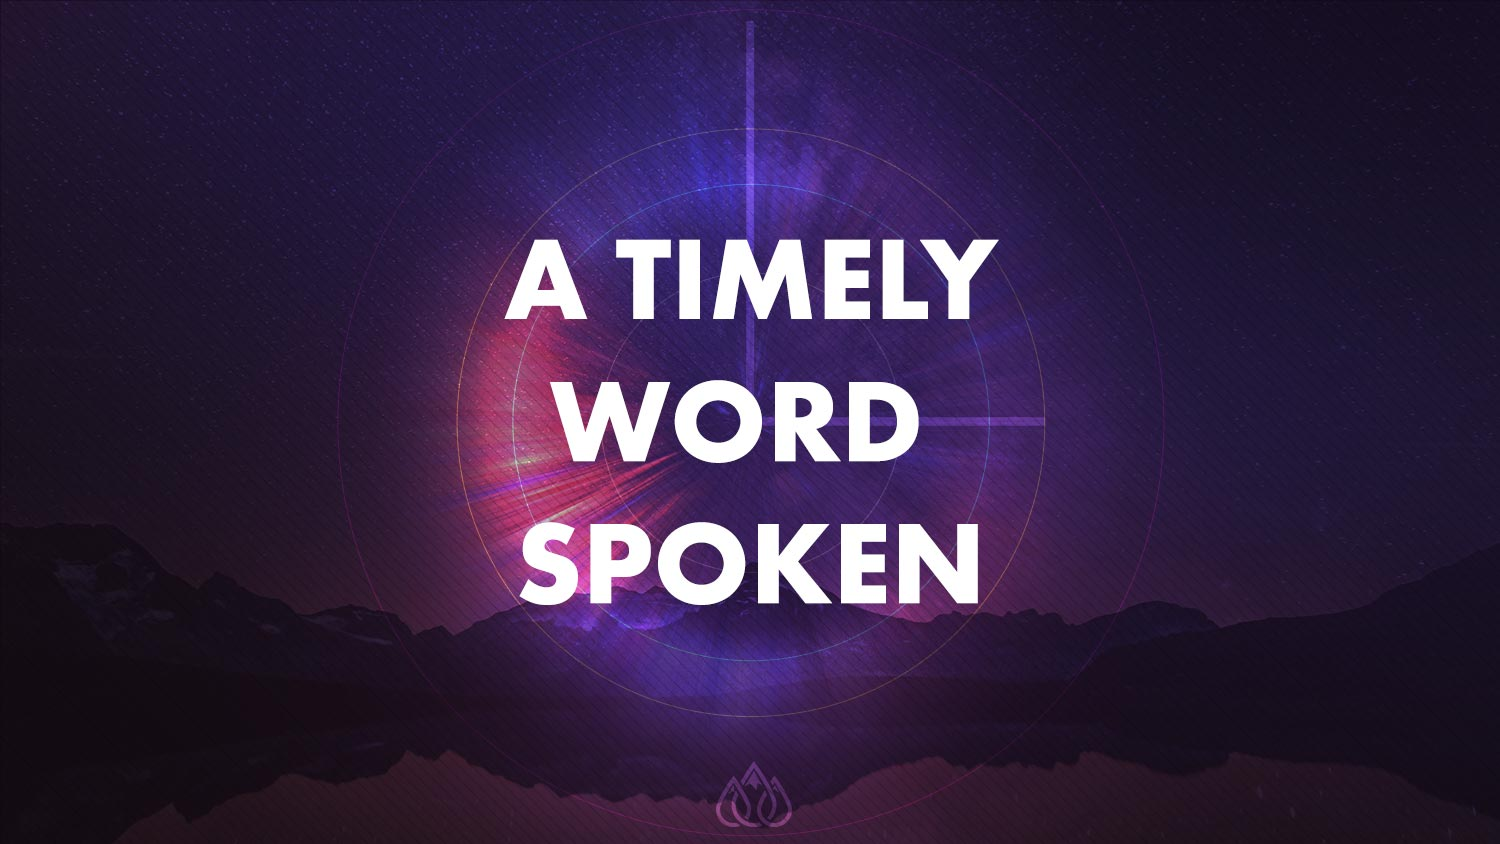 A Timely Word Spoken Image